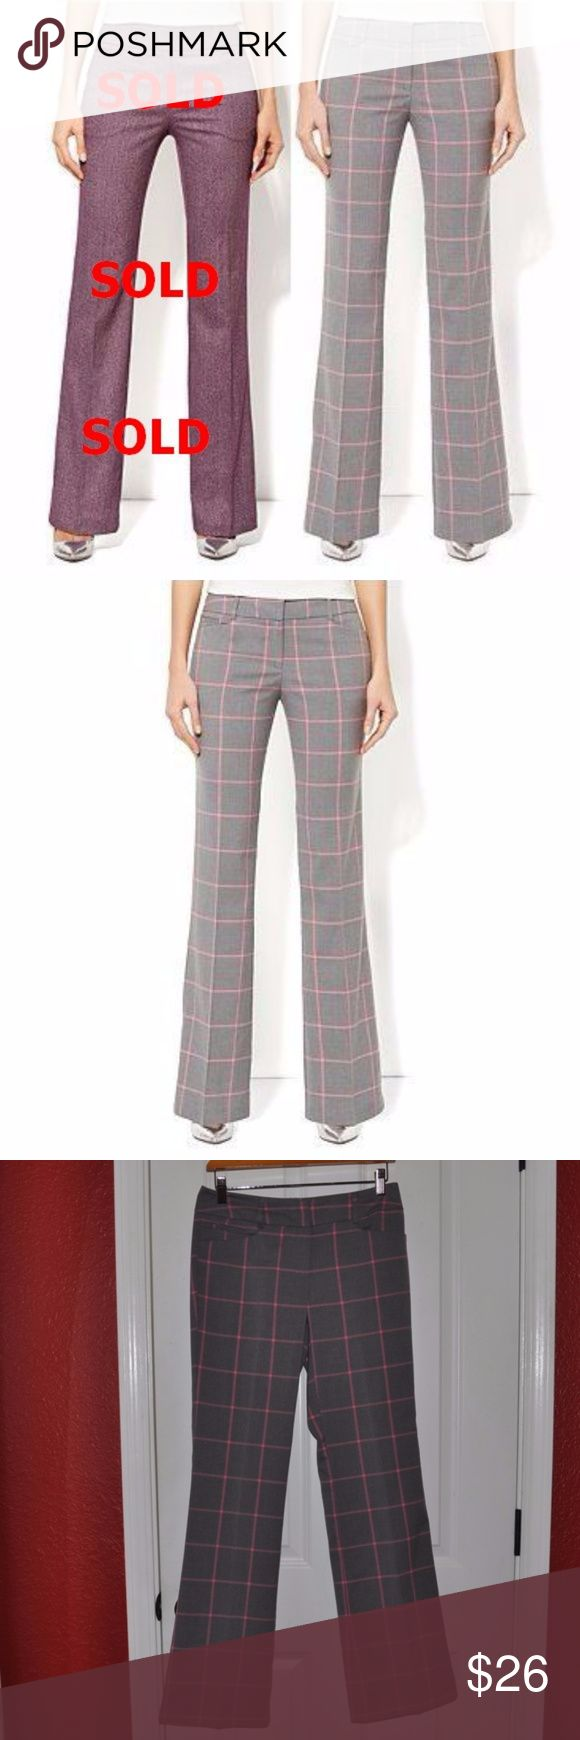 New York & Company Gray Plaid 7th Avenue Pants A1 size 2 waist 29 hips 36 rise 8 1/2 inseam 31 1/2  windowpane plaid (gray/pink) SOLD OUT herringbone (purple)  modern fit boot cut Sits just below waist. Slimming through hip and thigh Zip front with hook-and-bar closure Belt loops Front pockets Back welt pockets  condition: excellent @cjrose25  Trouser Dress Pants Slacks Career Suit Separate Business Attire Work Office Secretary Administrative Admin New York & Company Pants Boot Cut & Flare